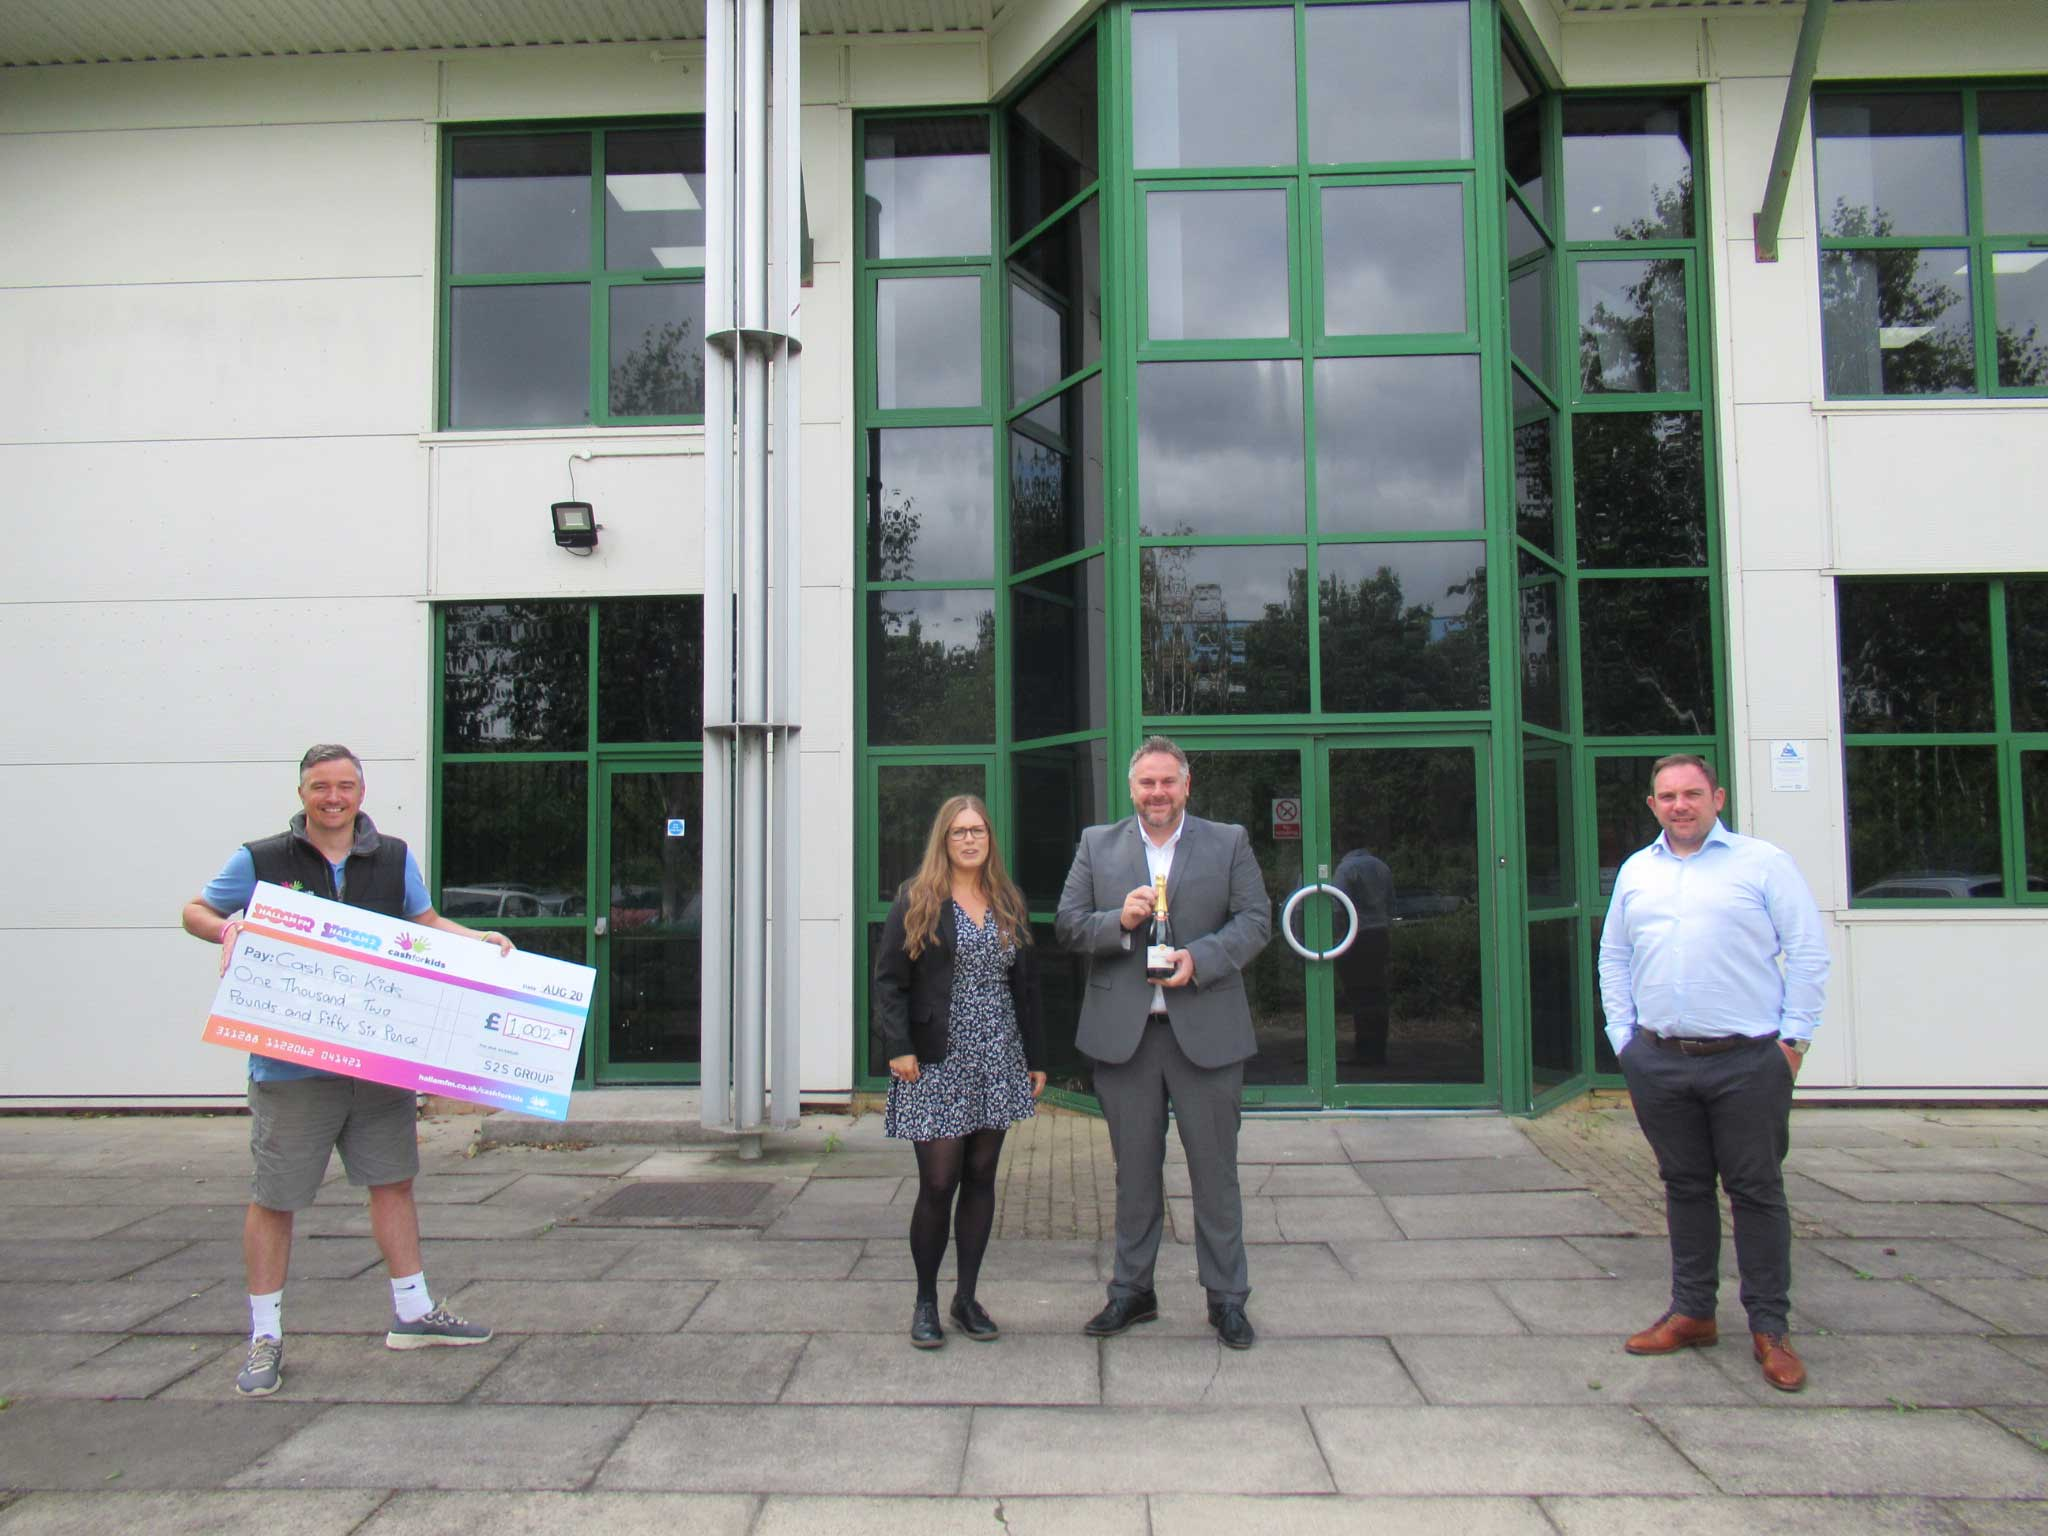 S2S Virtual Golf Day raises £1,002.56 for Cash for Kids